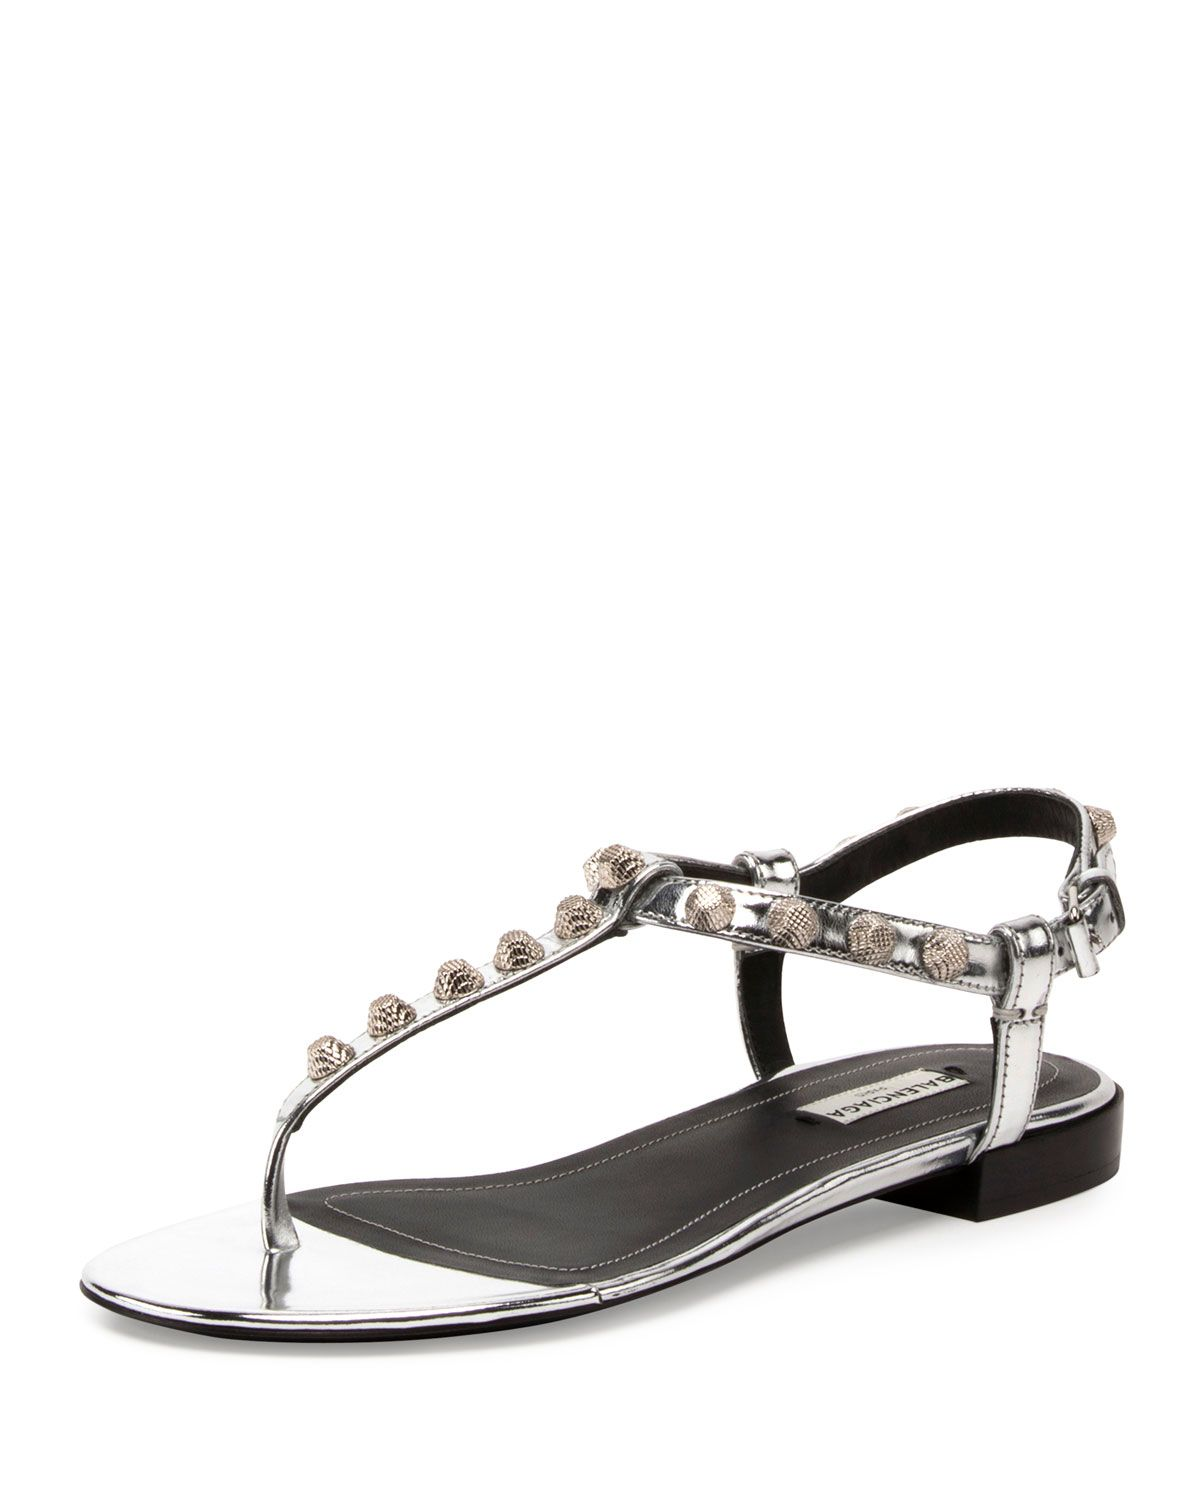 balenciaga studded sandals